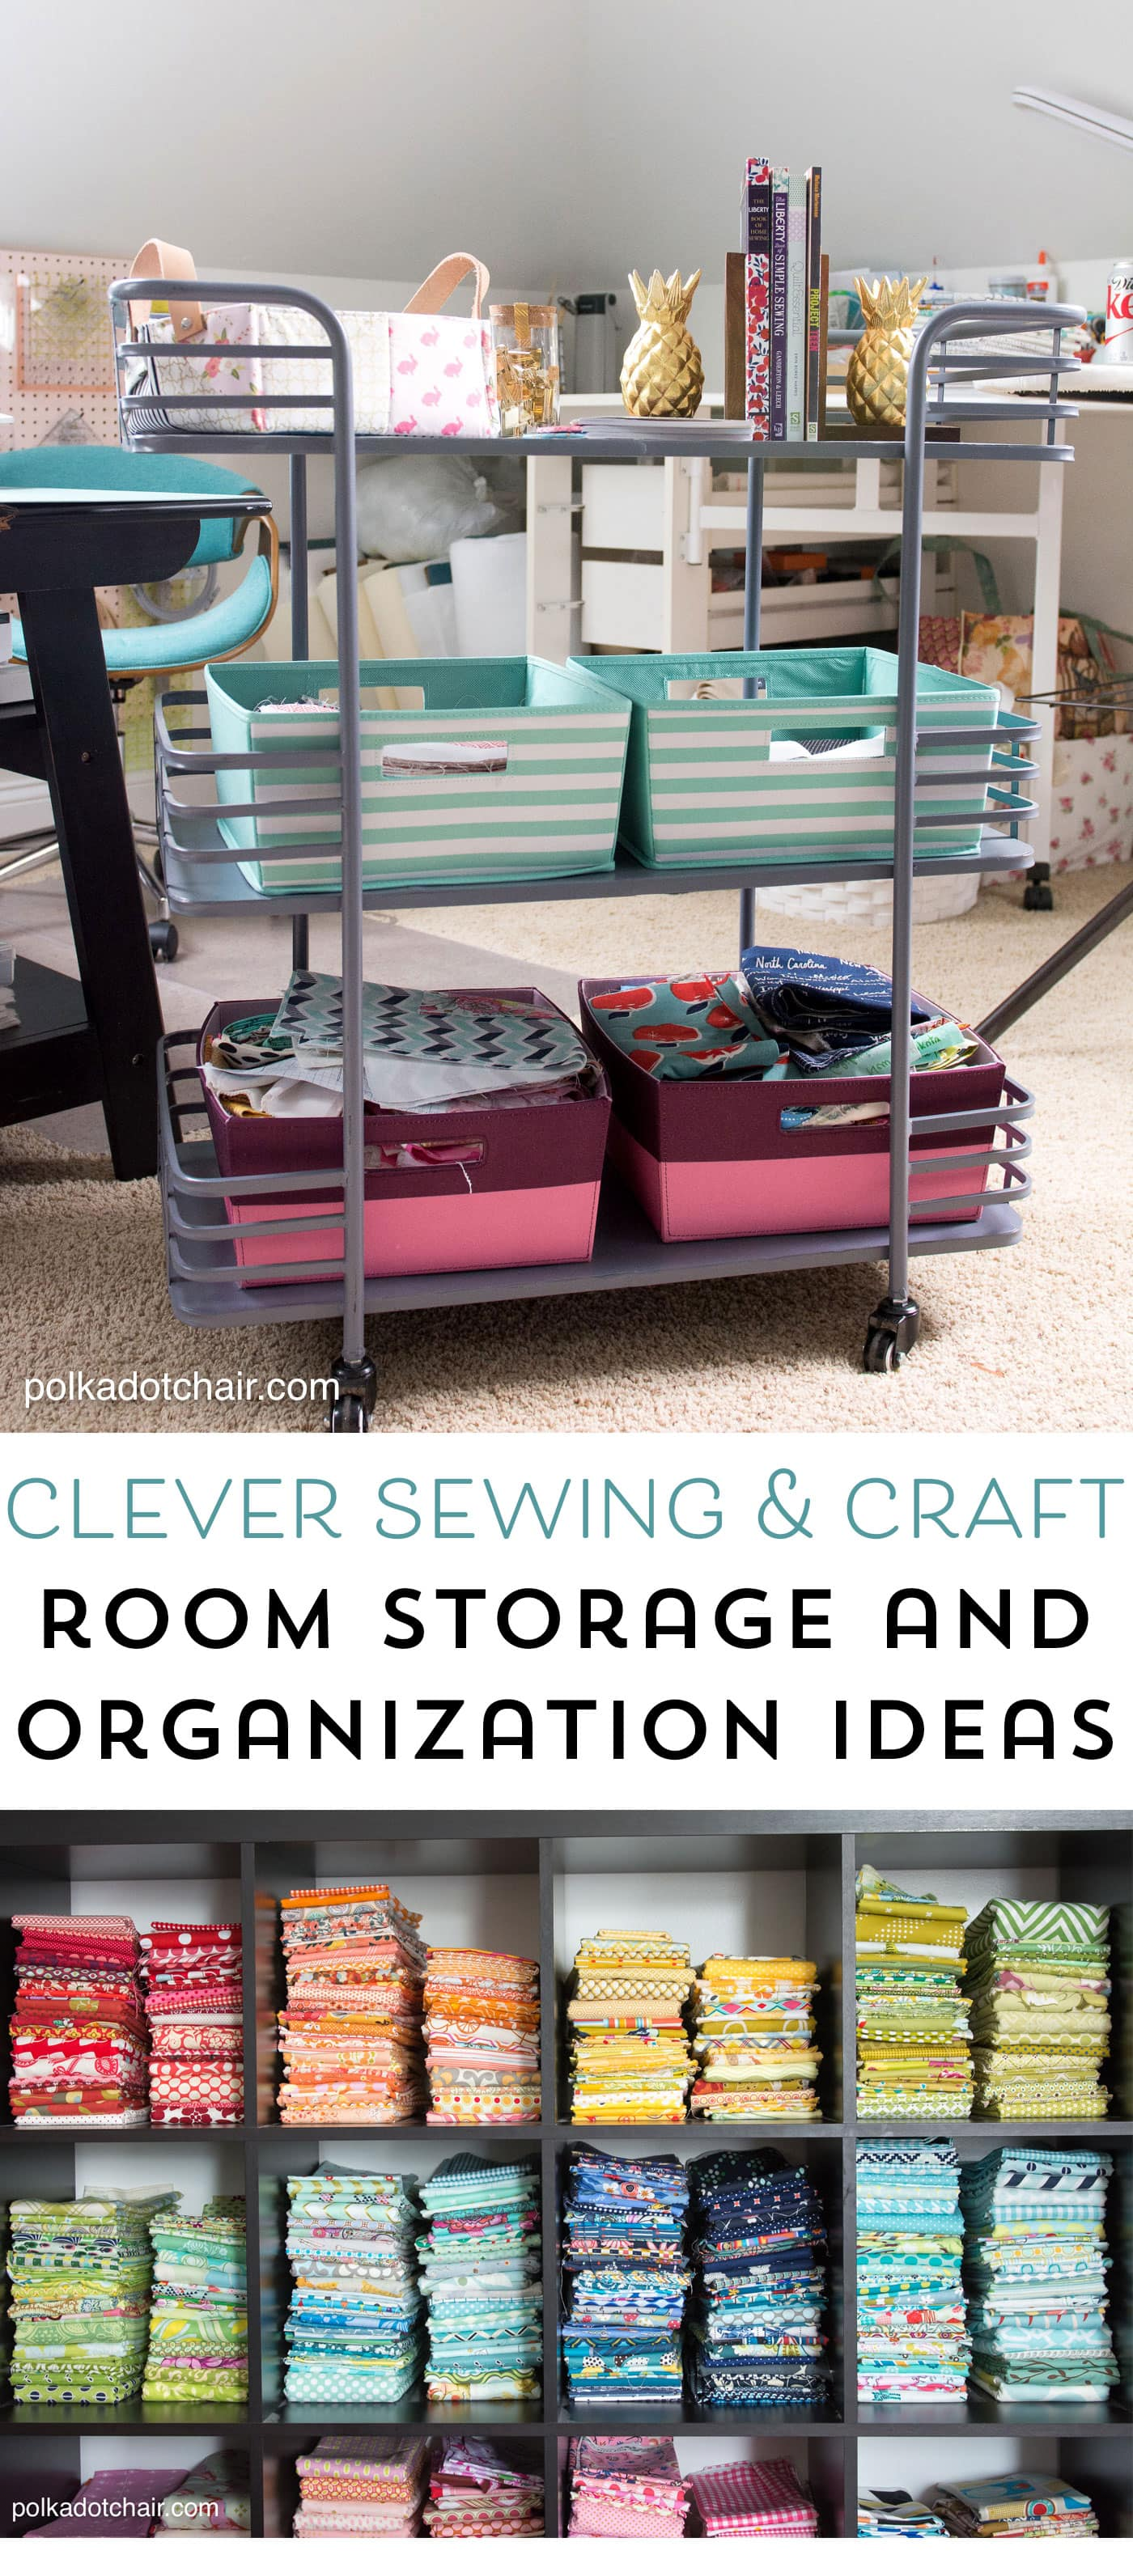 Cute and Clever Sewing Room Organization Ideas; fun ideas for storage and ways to make your sewing space more functional